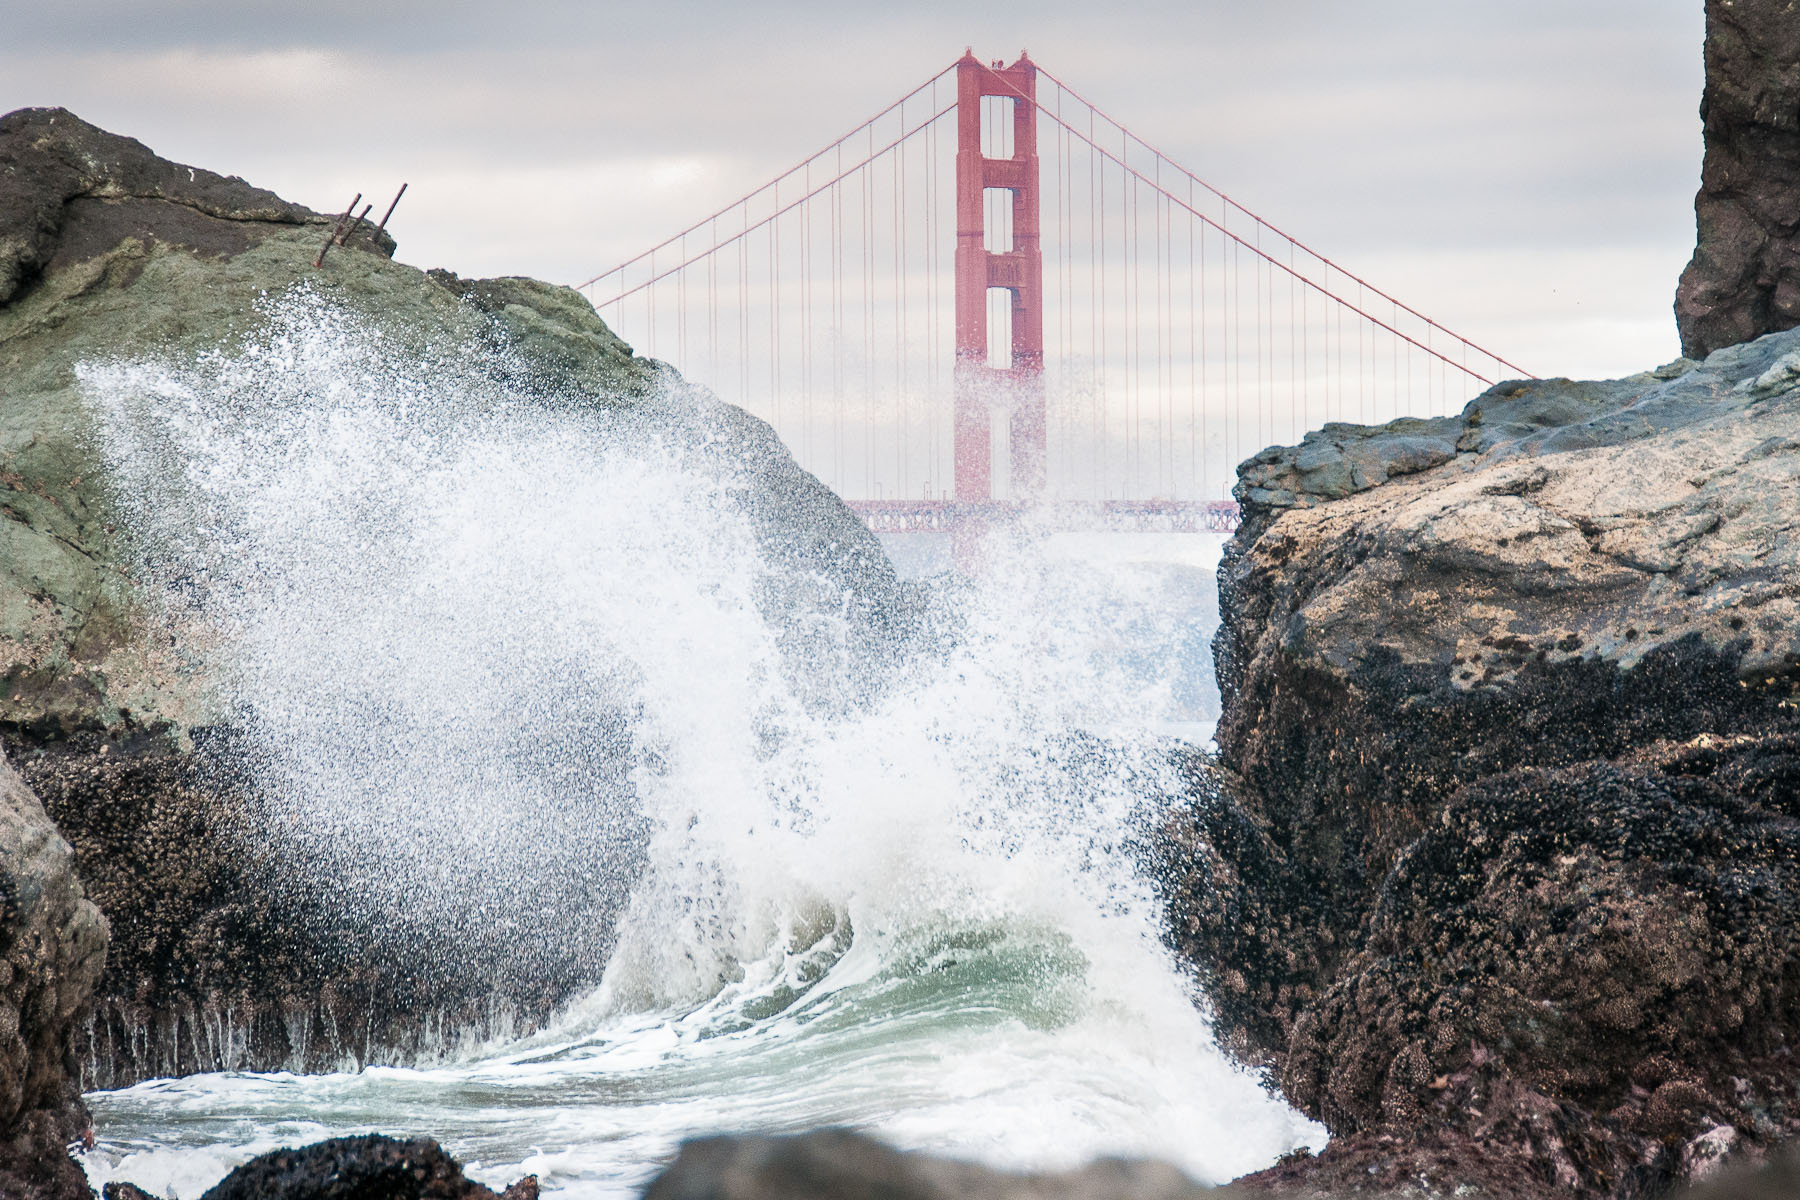 goldengatebridgewaves